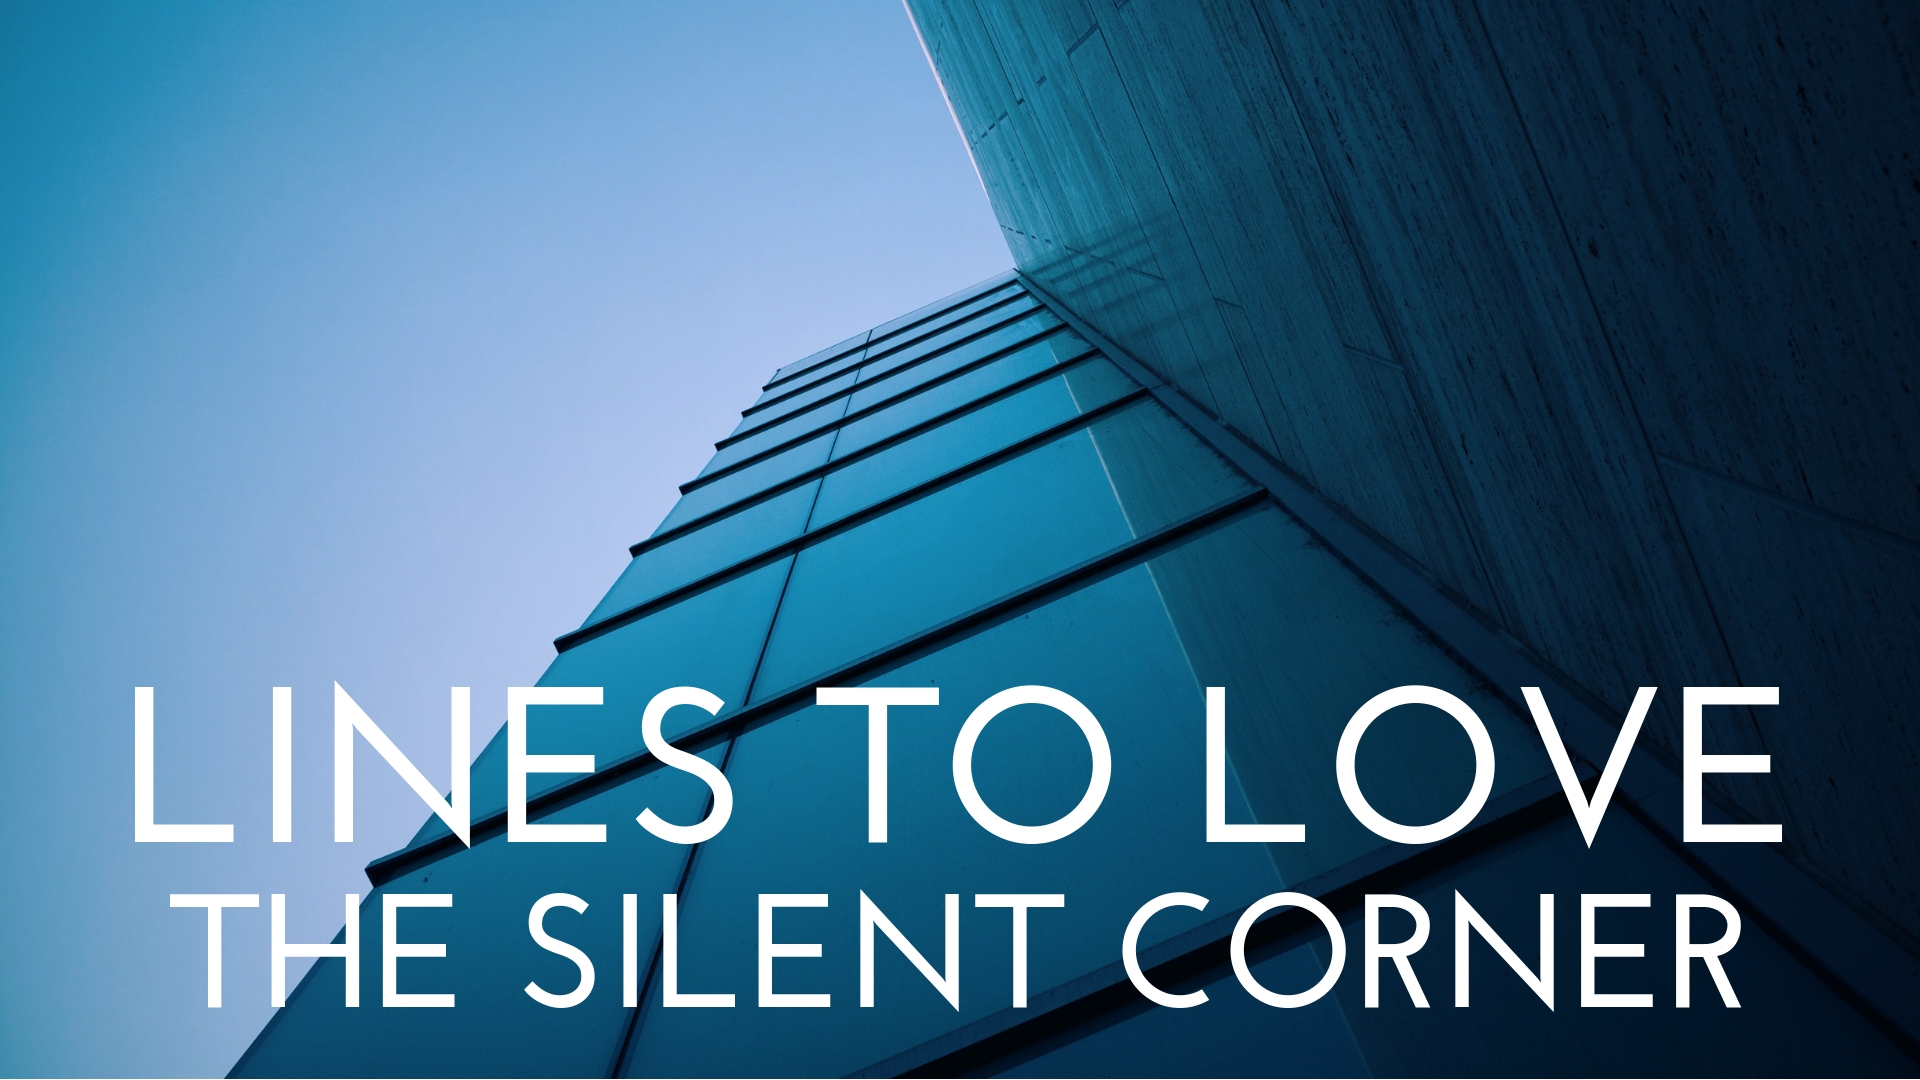 banner-lines-to-love-the-silent-room-02.jpg